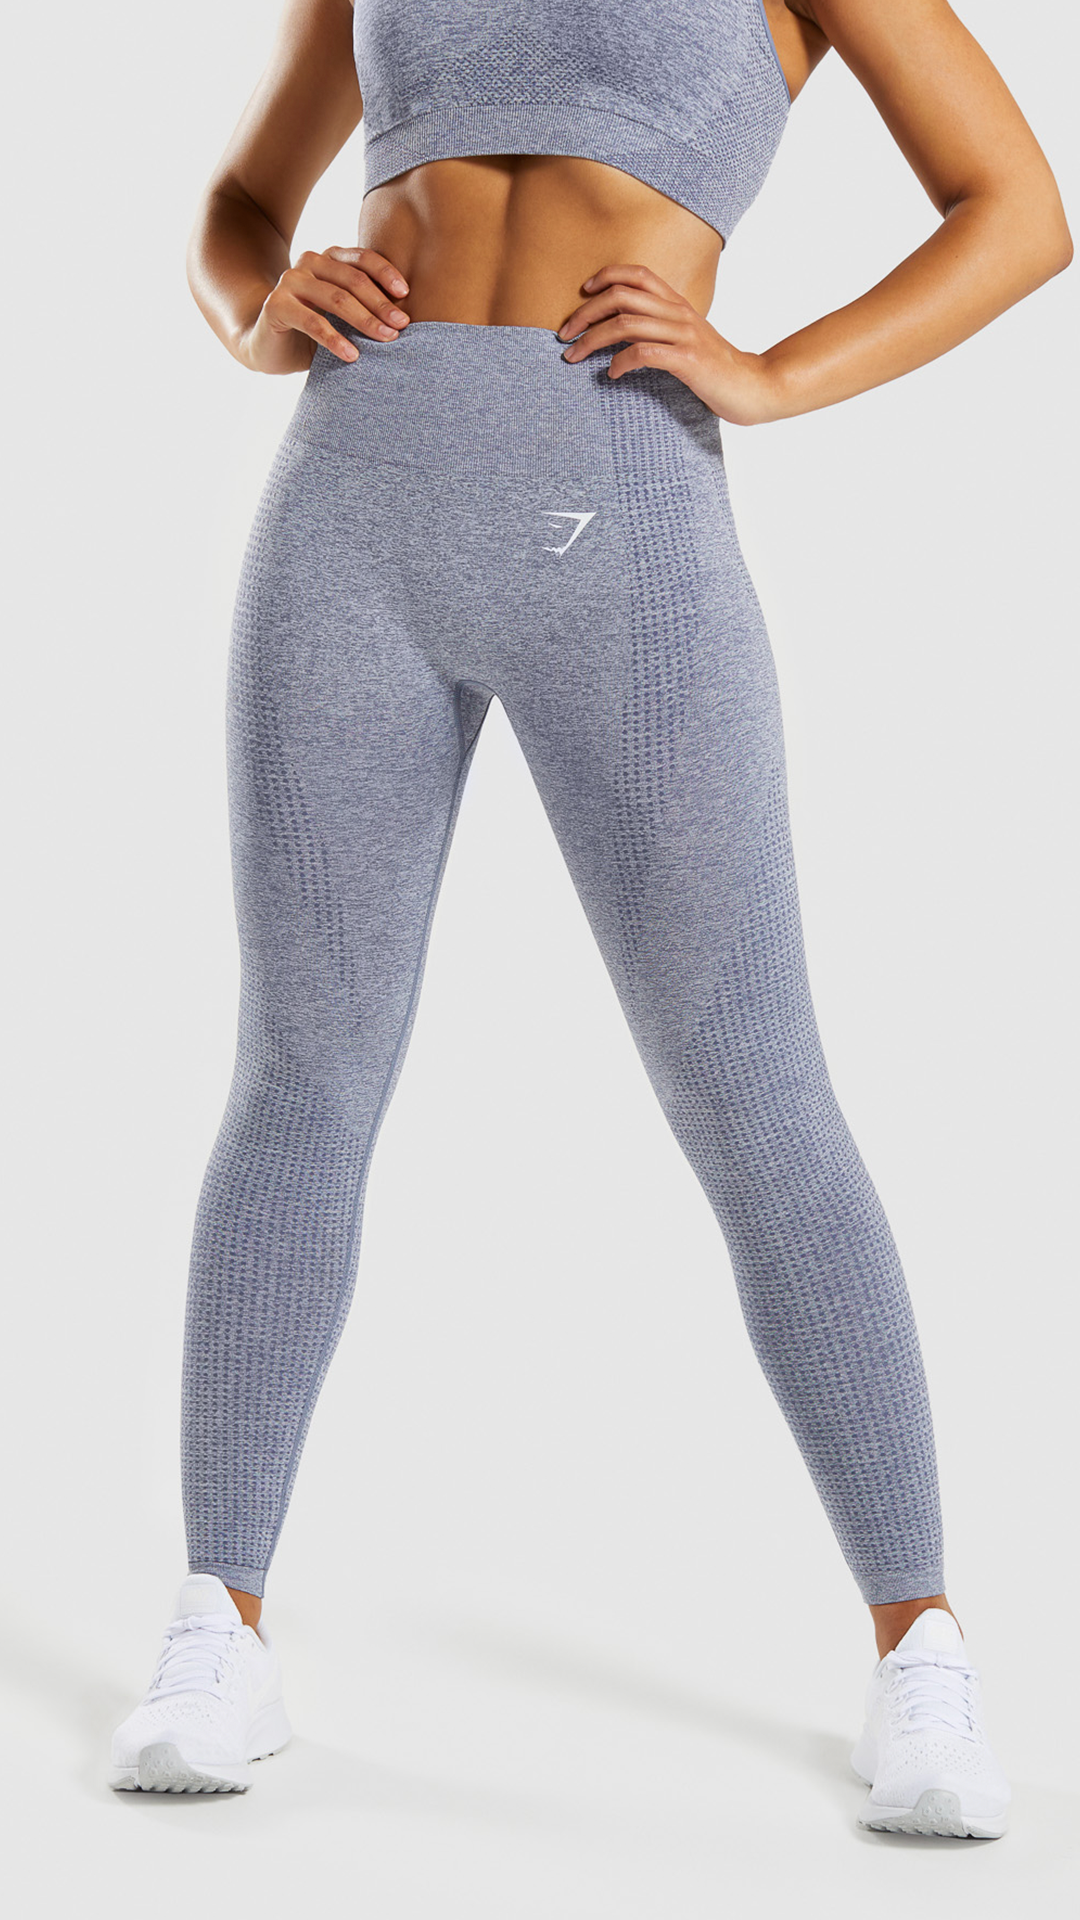 Vital Seamless Leggings, Steel Blue. Empowering through sweat. The leggings you'll train in, sweat i...